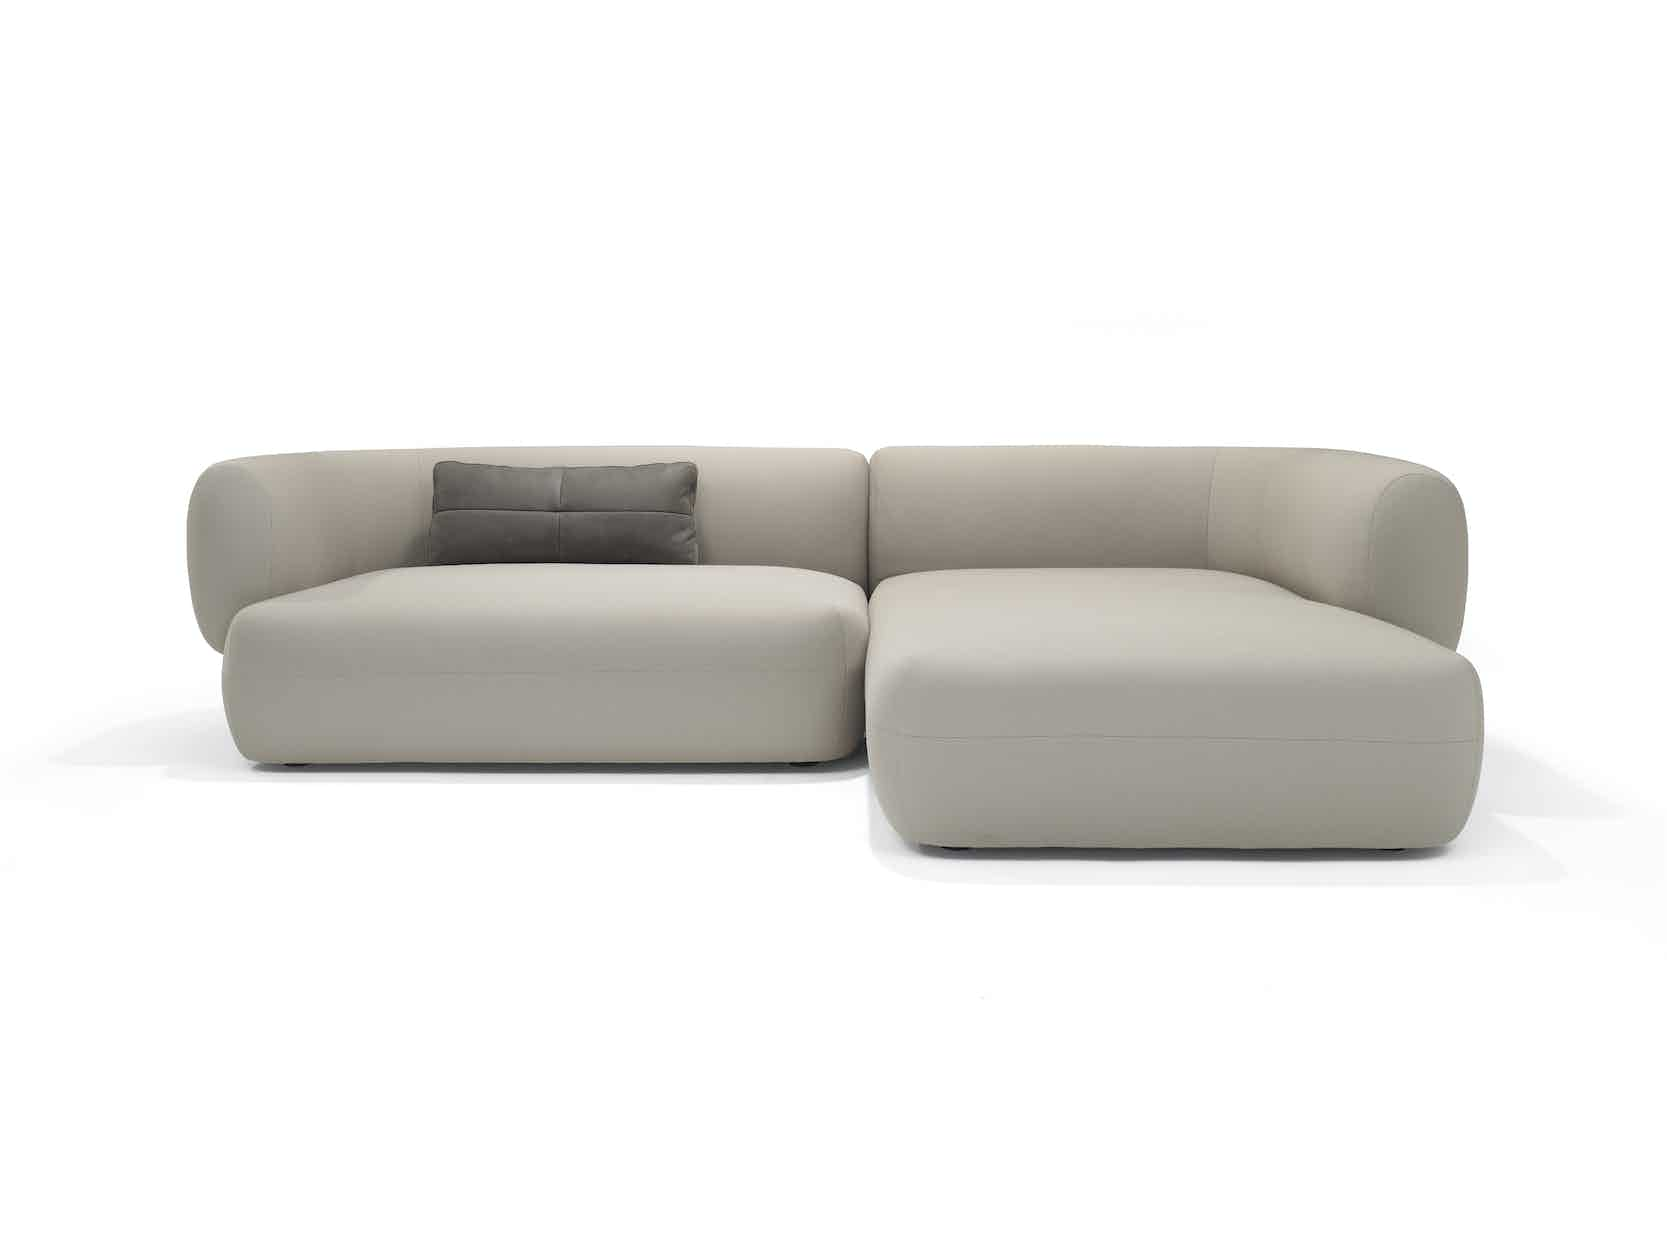 Linteloo-front-pillow-grey-arp-haute-living